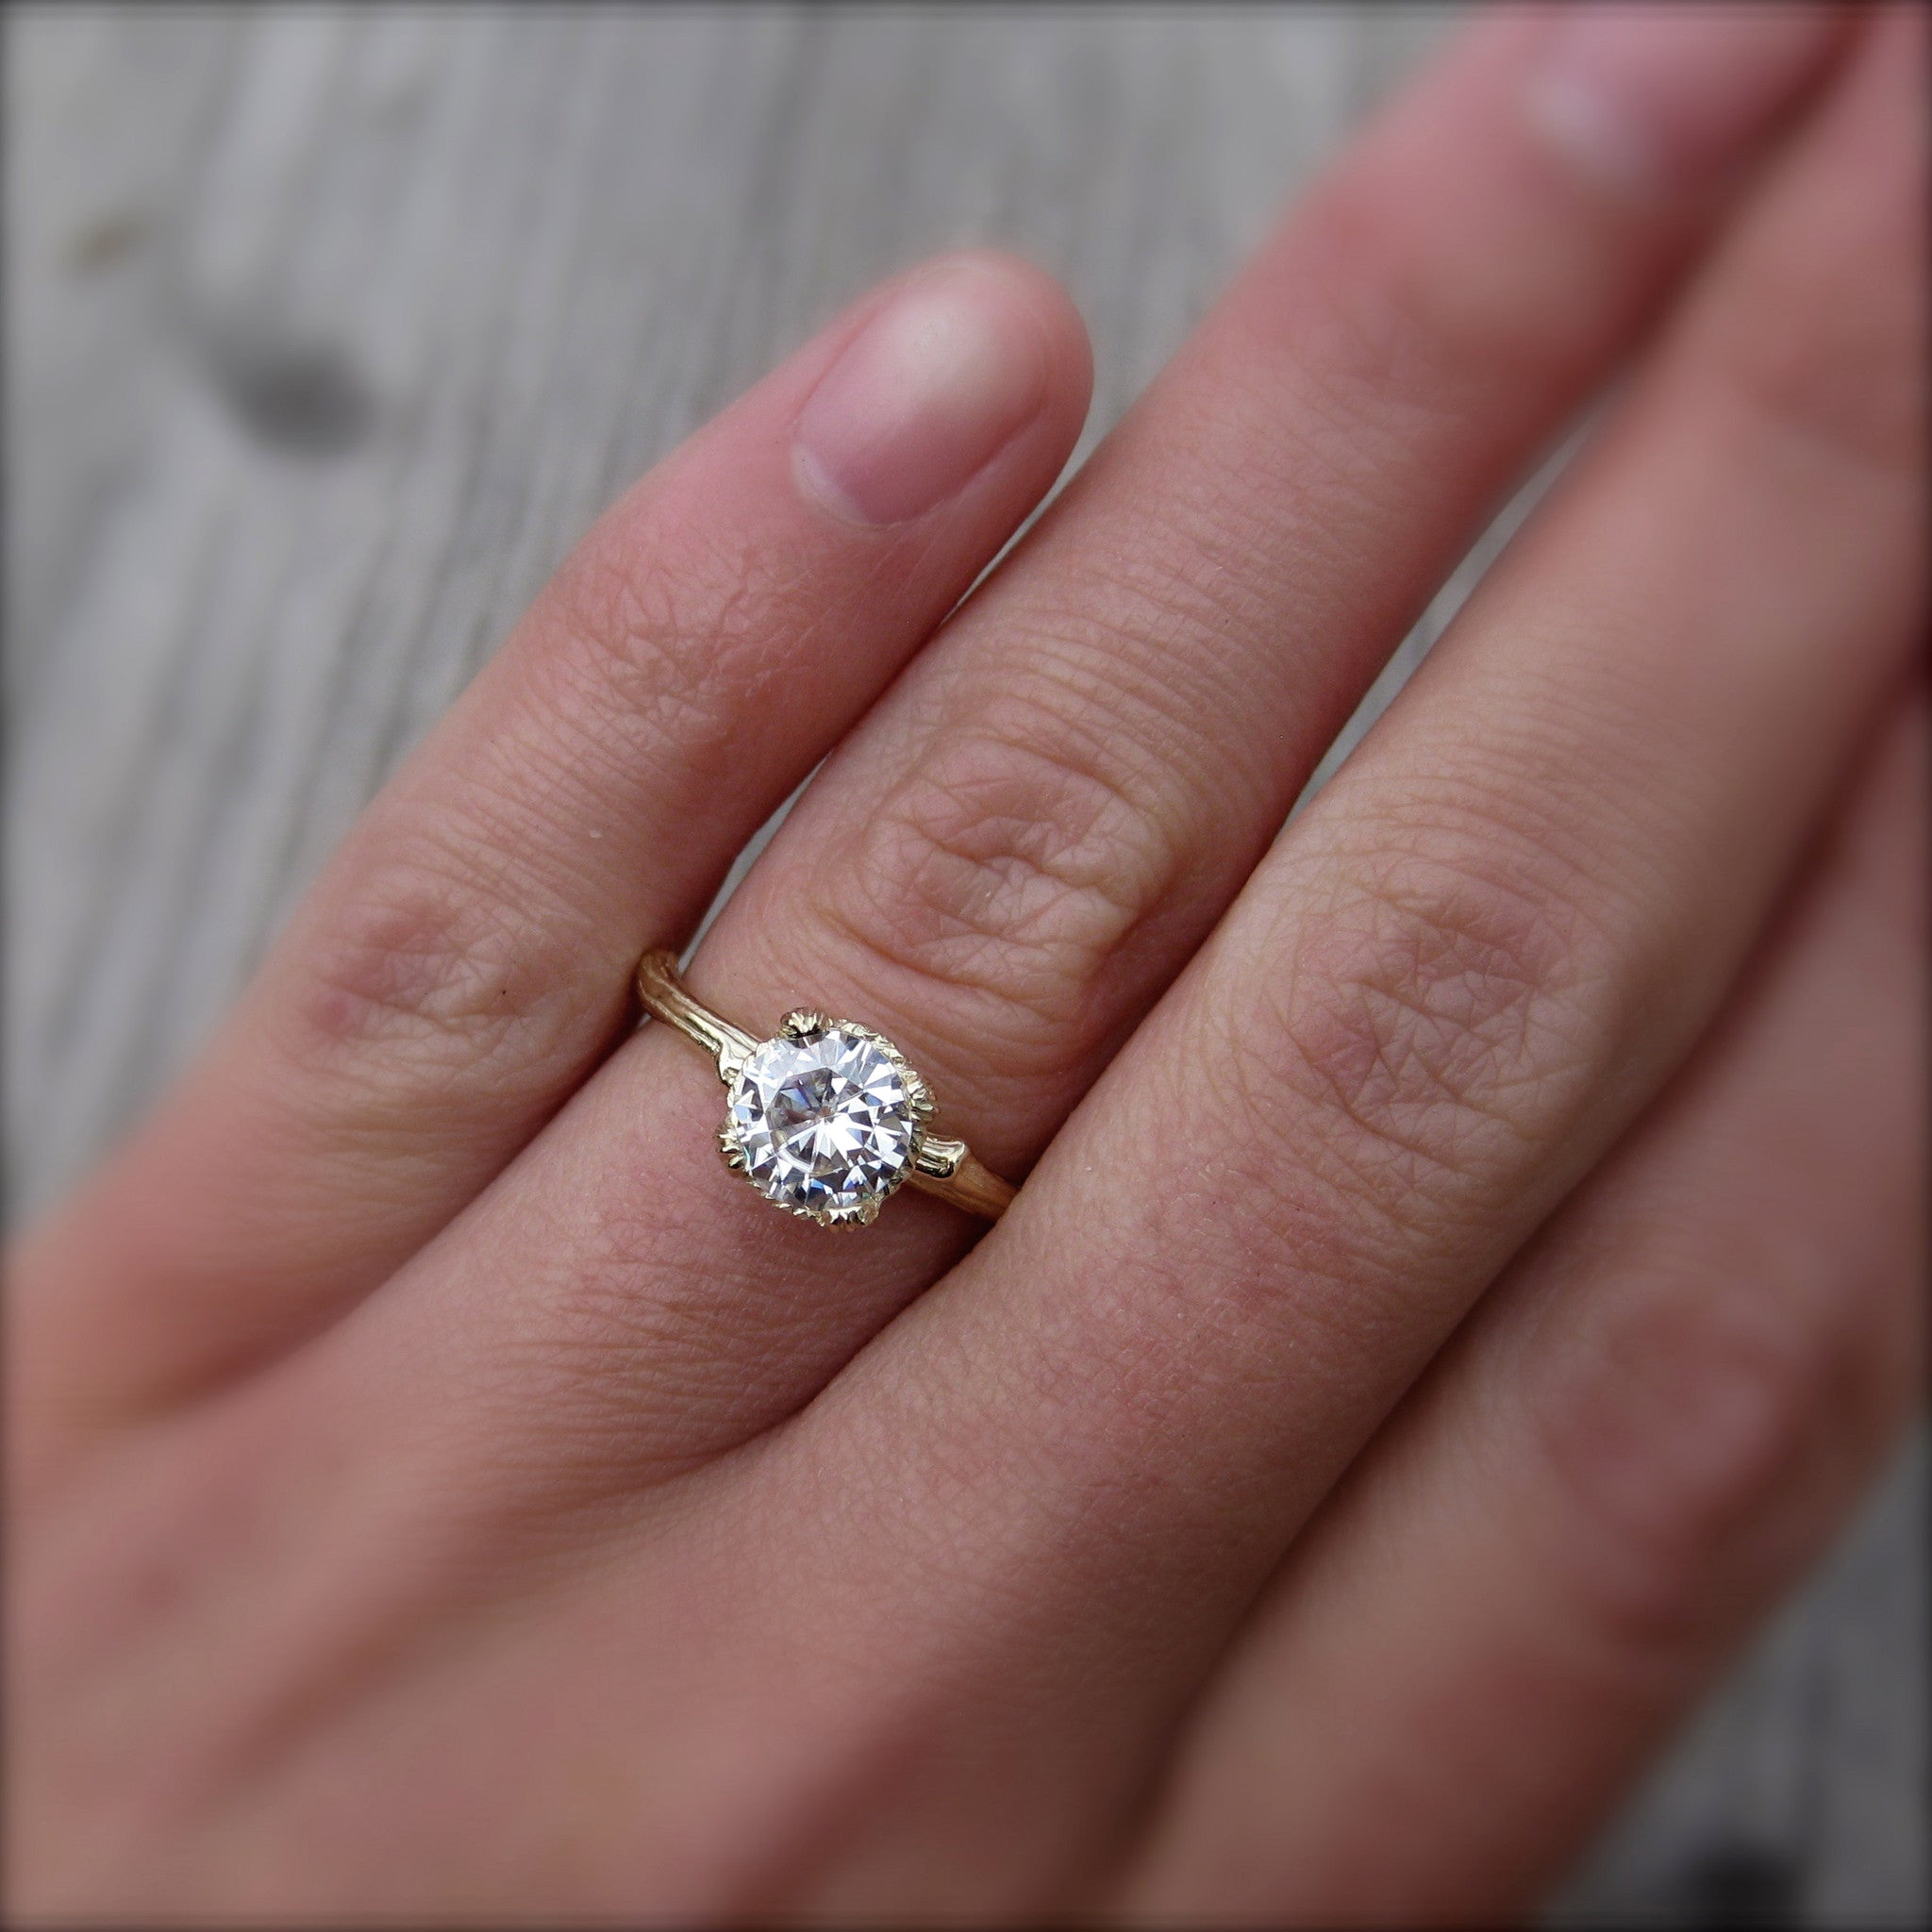 ... Eco Friendly Engagement Ring With Conflict Free Diamond In 14k Gold  Modeled On Finger ...